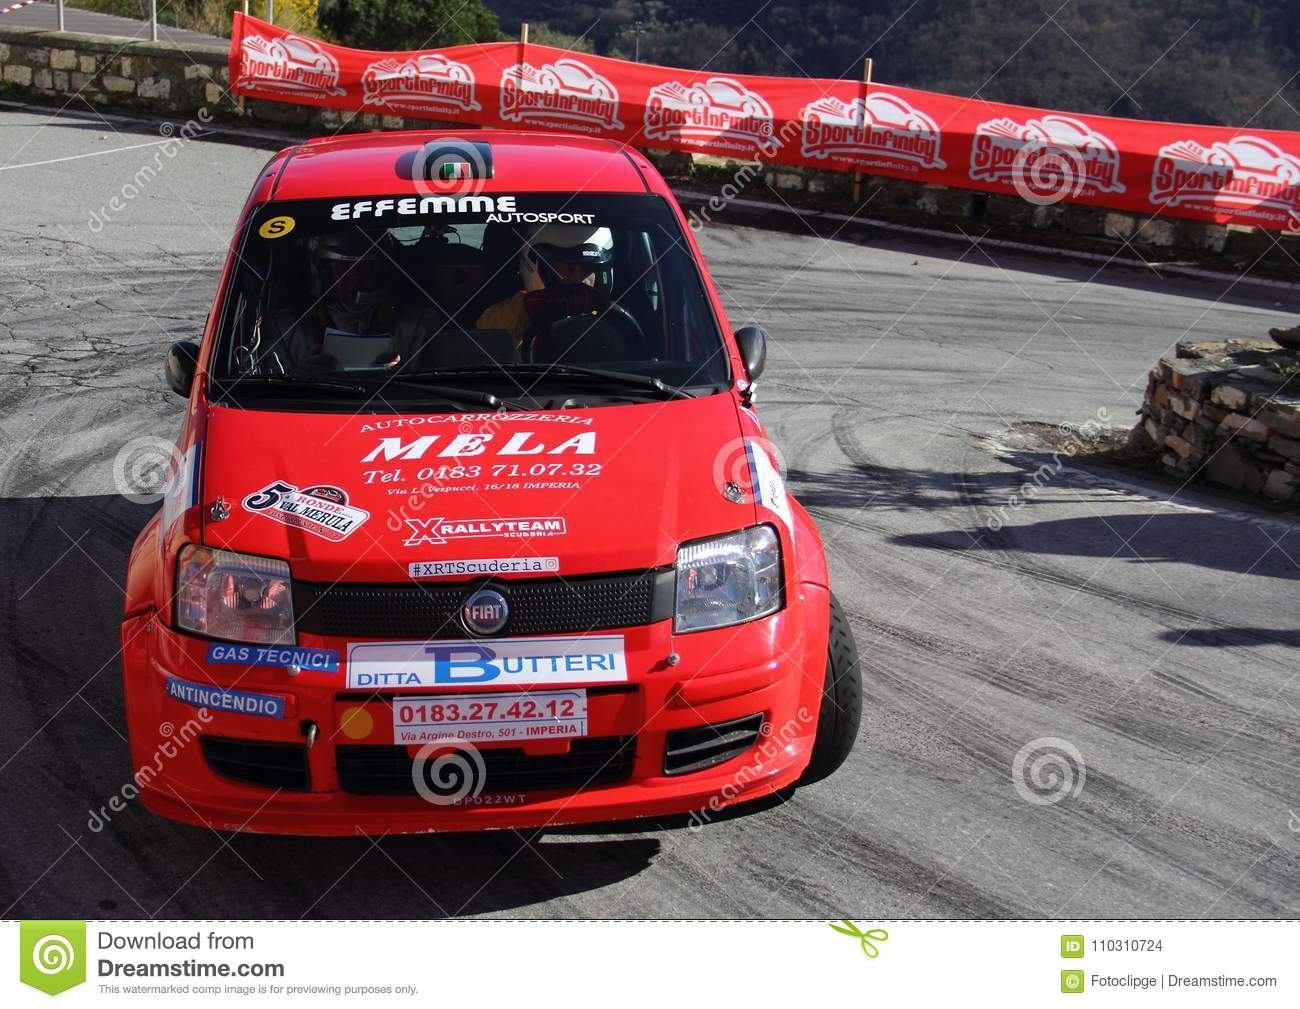 A Fiat Panda Race Car Involved In The Race Editorial Stock Image